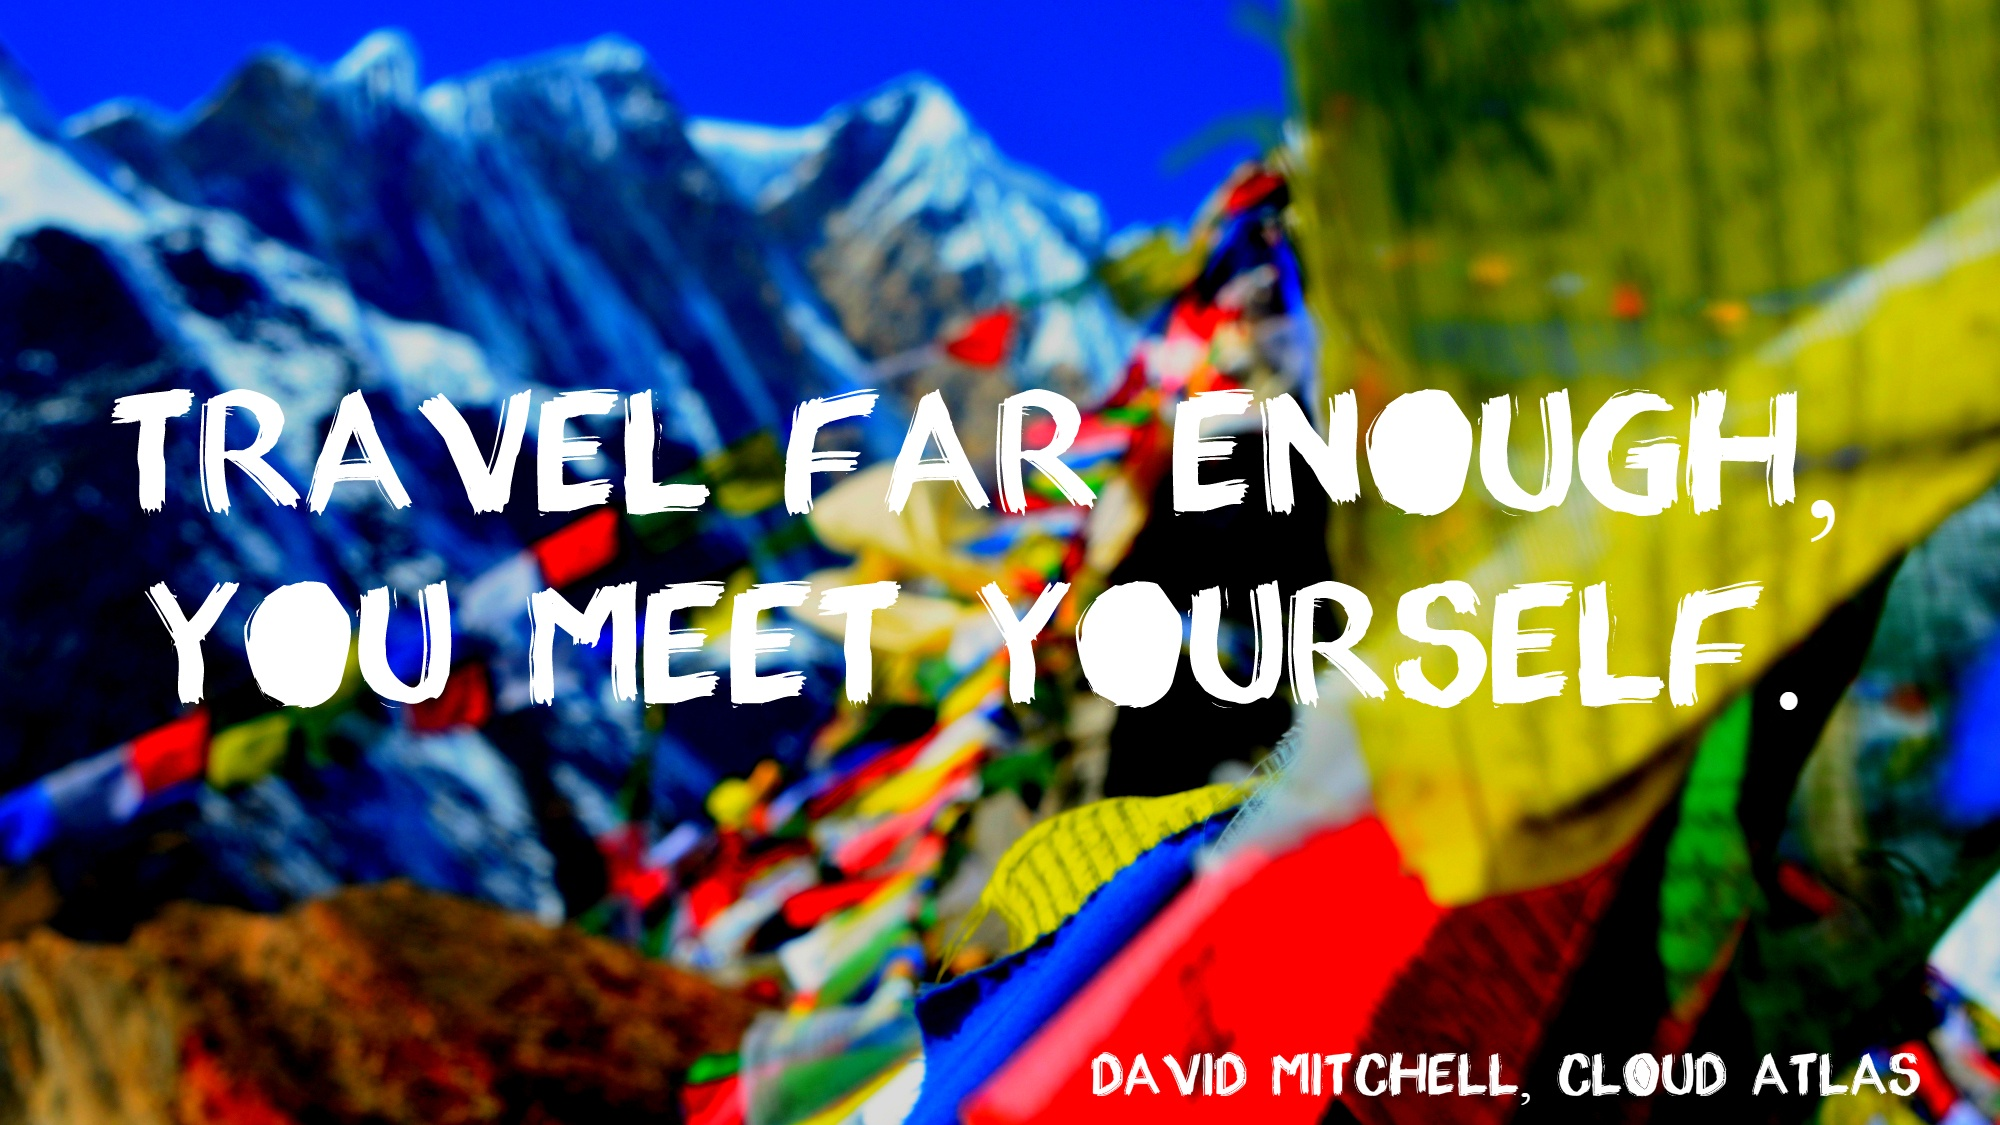 Travel far enough, you meet yourself.